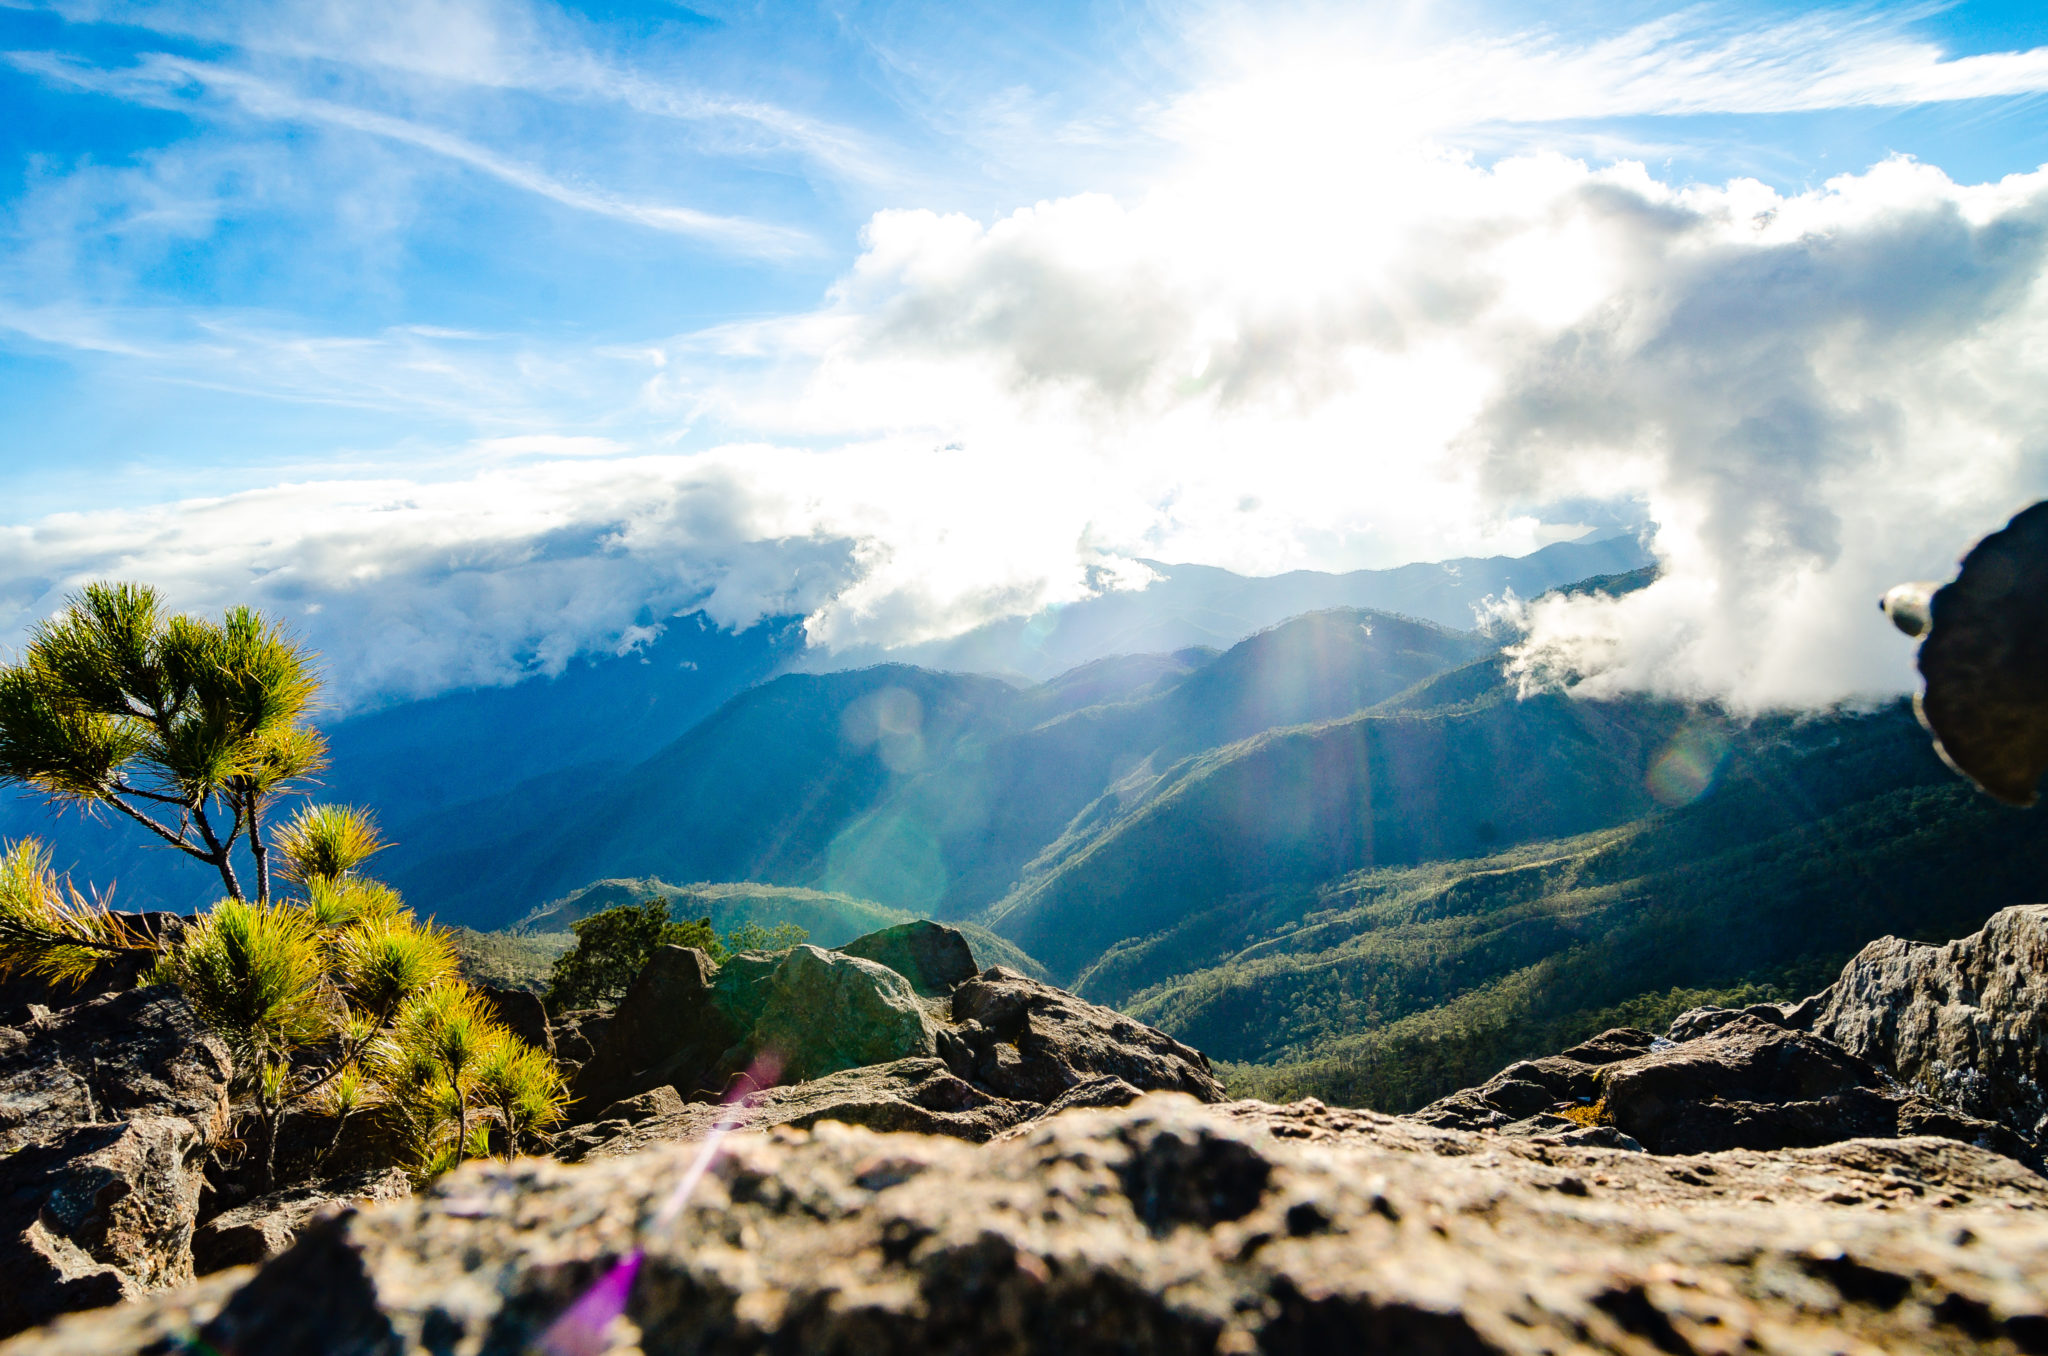 Climbing Pico Duarte, The Tallest Mountain in the West Indies